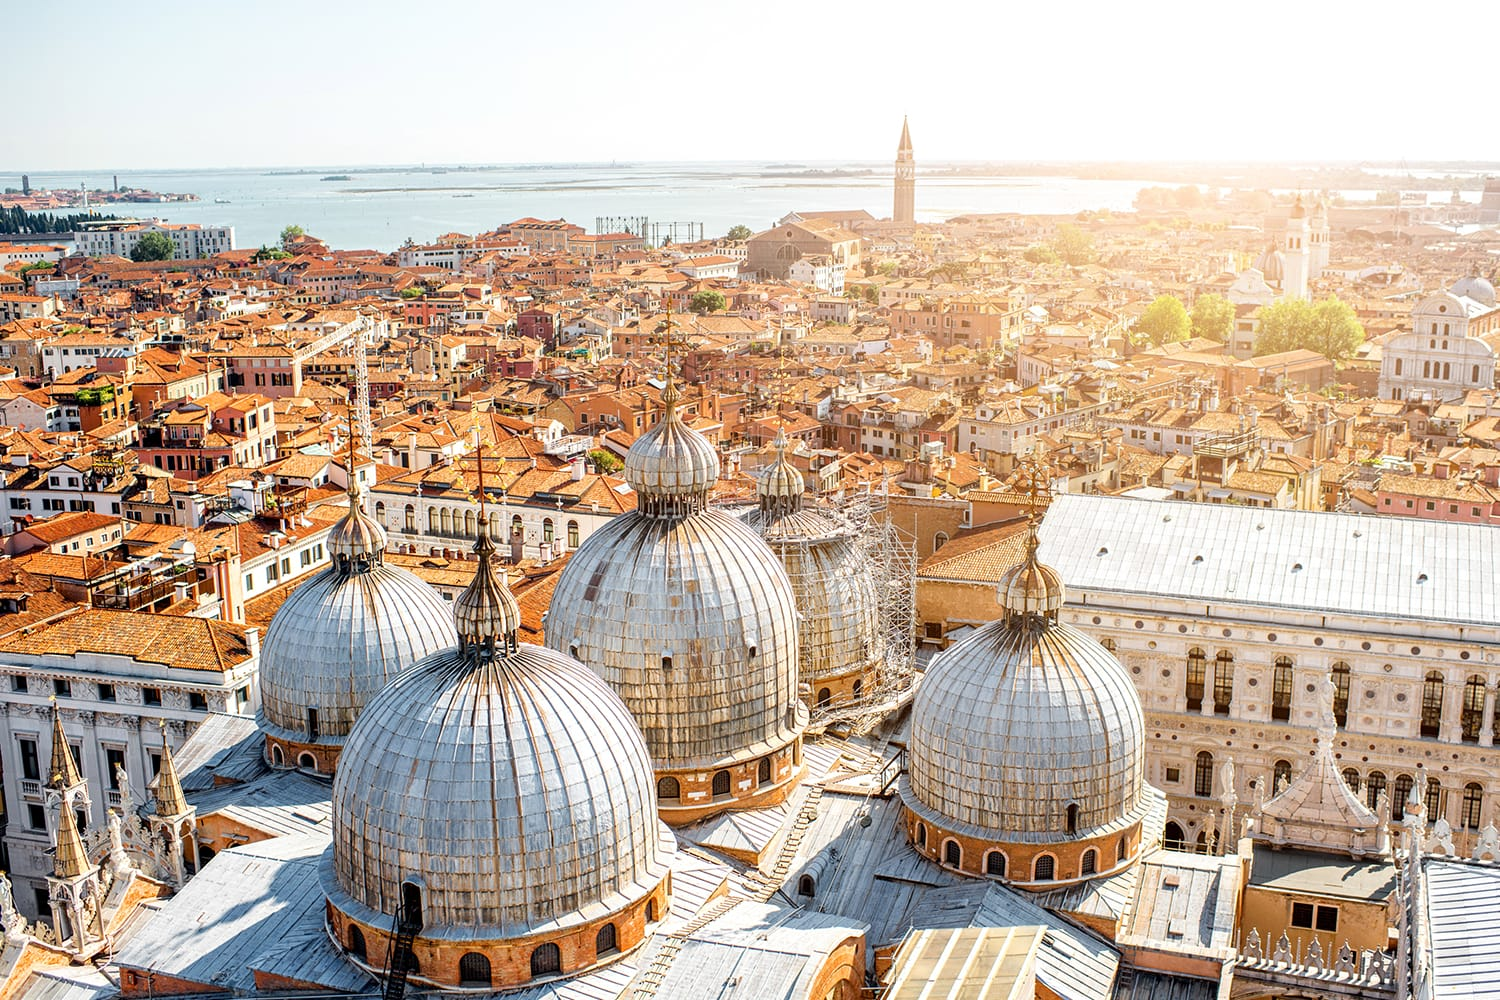 Aerial view on Venice with domes of Saint Mark's basilica in Venice, Italy